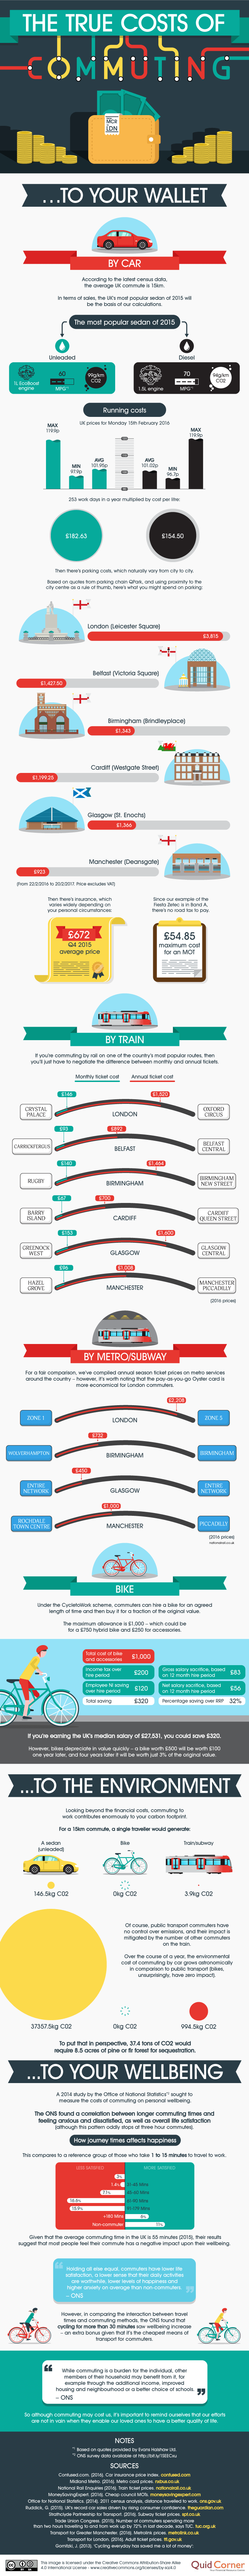 The trust cost of commuting infographic